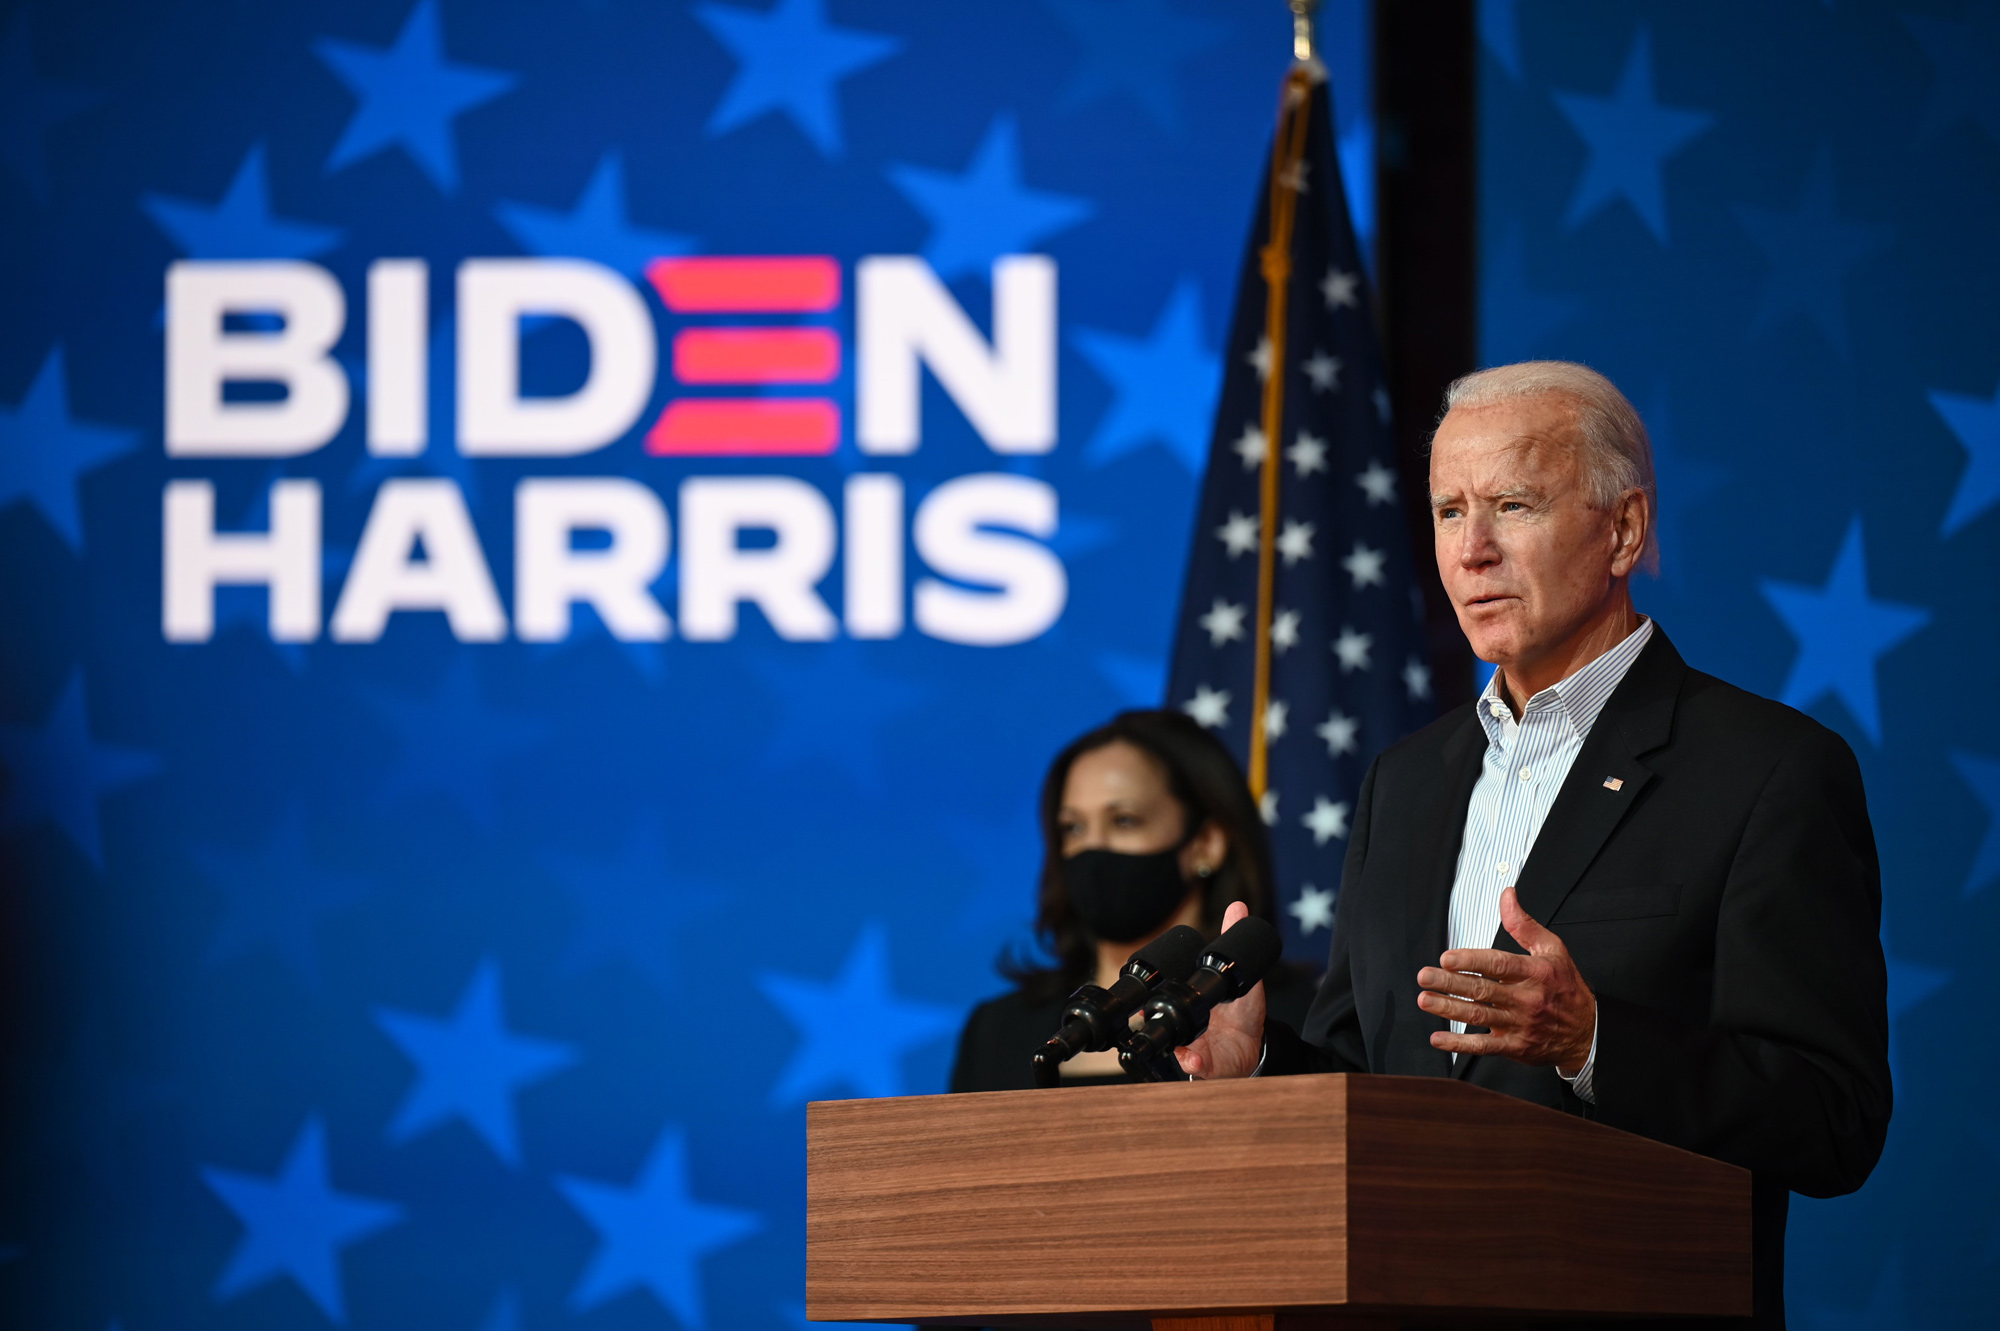 Democratic Presidential candidate Joe Biden speaks as Vice-Presidential candidate Kamala Harris looks on at the Queen venue in Wilmington, Delaware, on November 5.